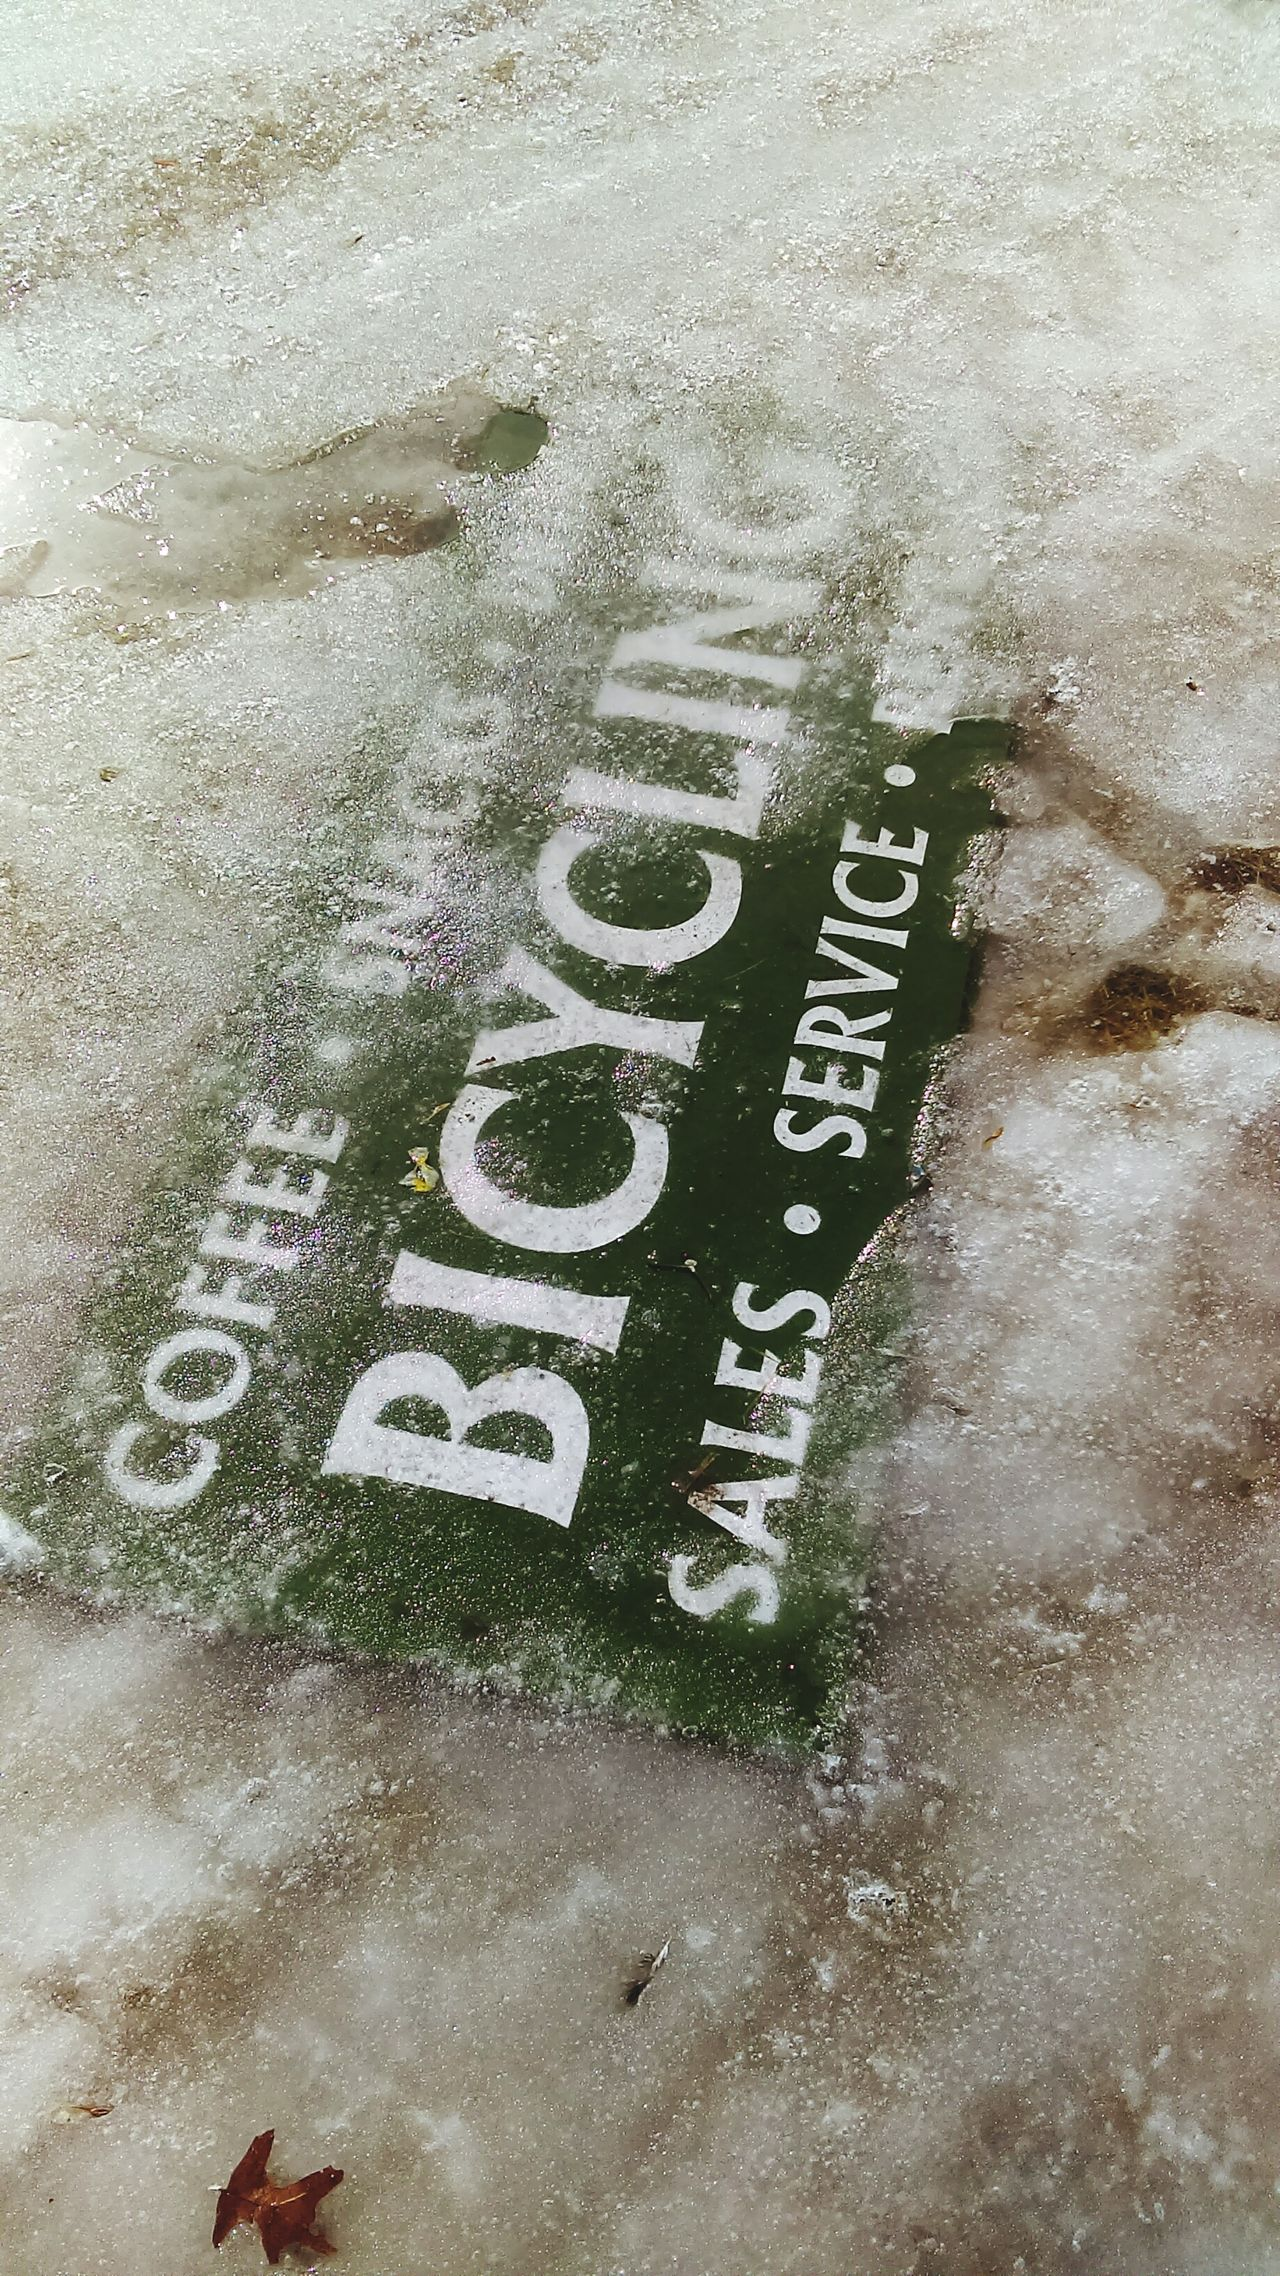 Close-up No People Day Text Outdoors Sign Signboard Signs_collection Ice Melting Ice Bicycle Signs Bicyclelife